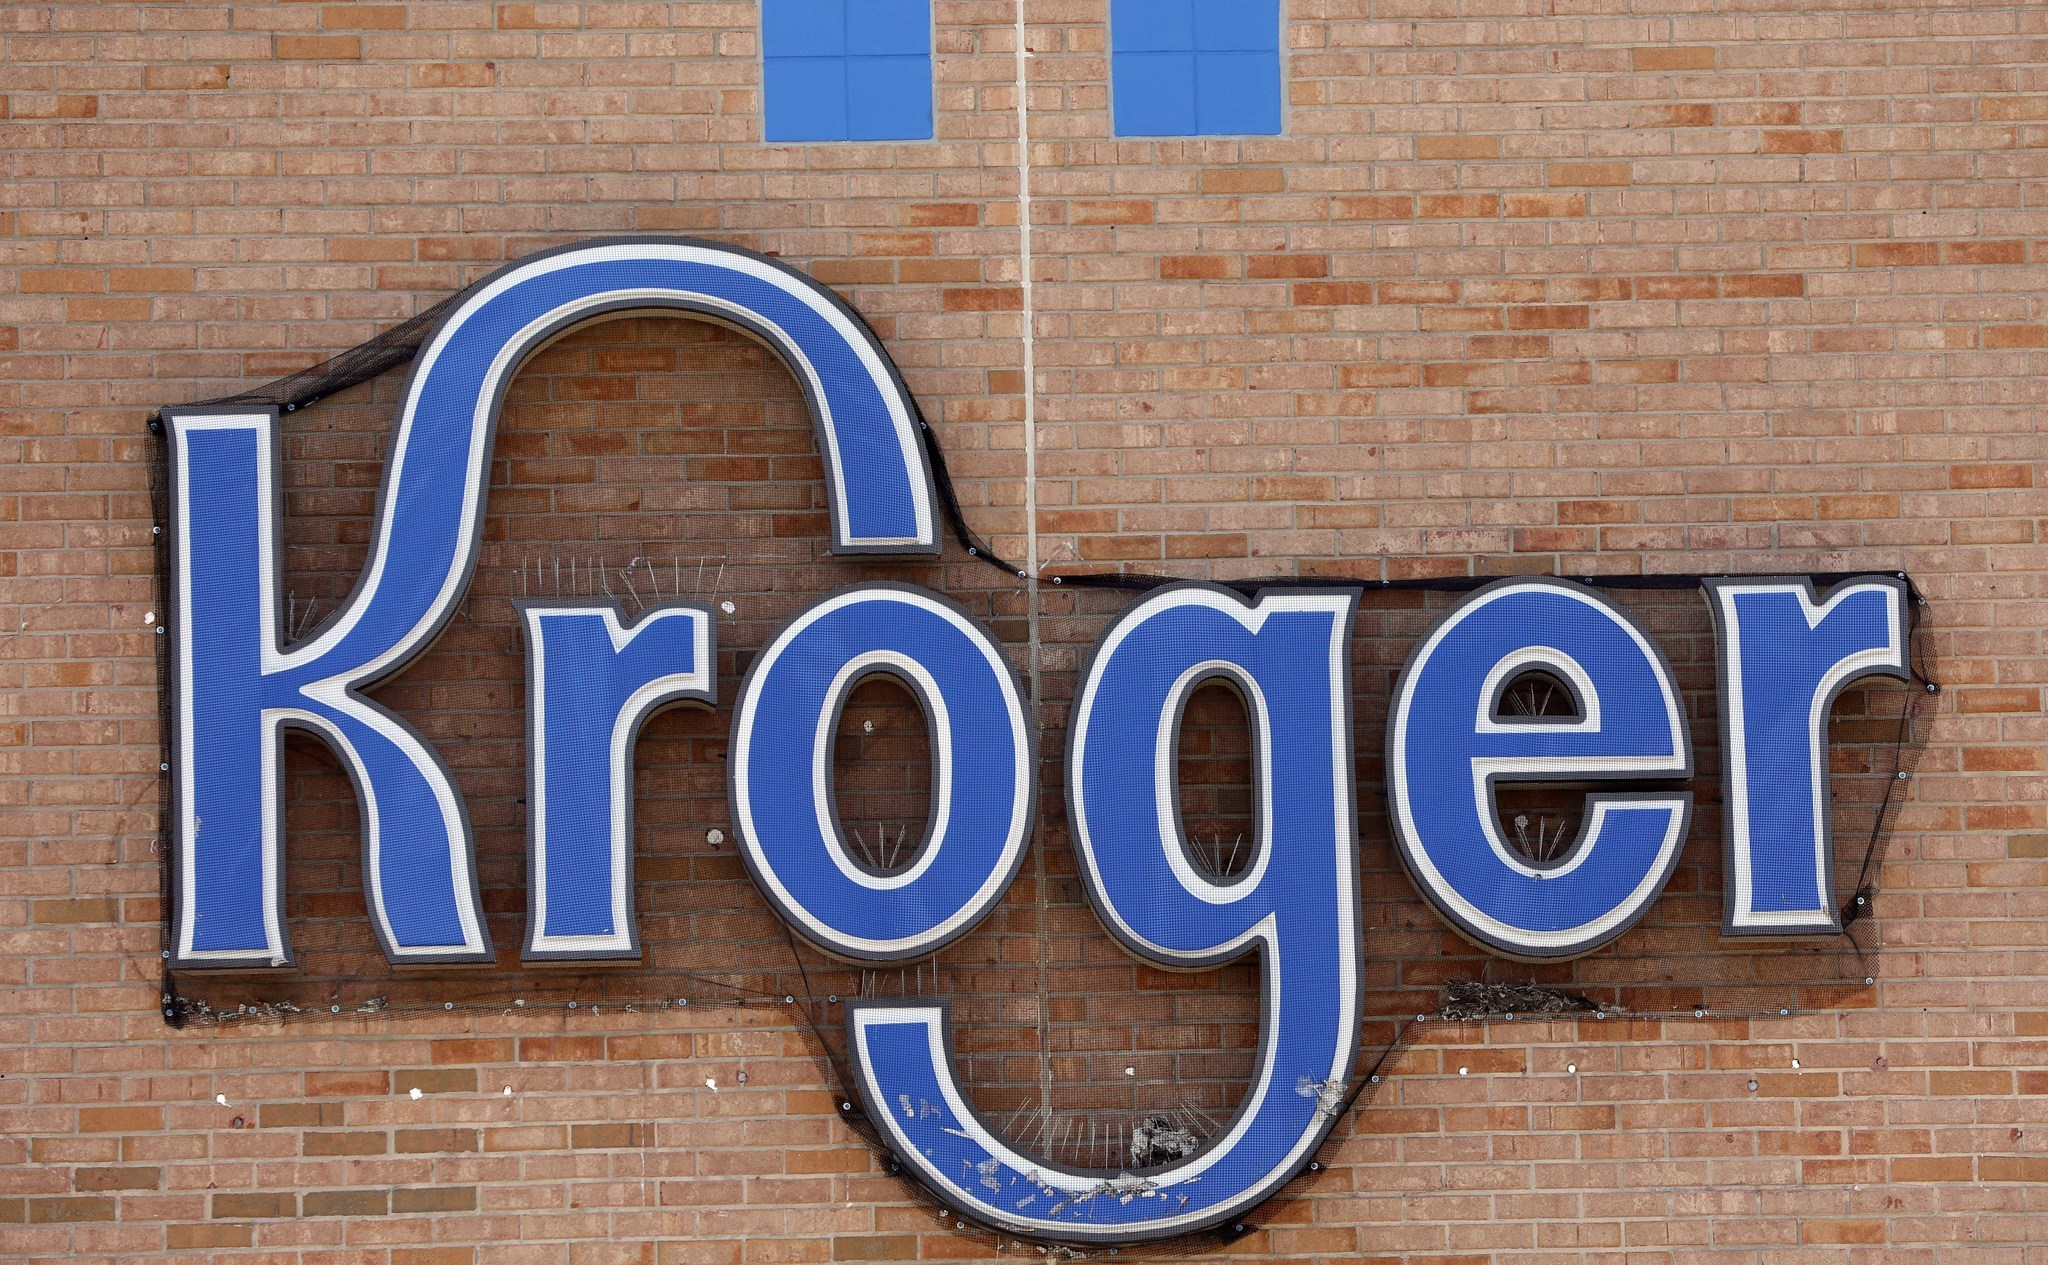 But Kroger is thriving in a difficult market for grocery stores. The supermarket chain has reported positive comparable-store sales for 45 straight quarters. Kroger is also expected to surpass.